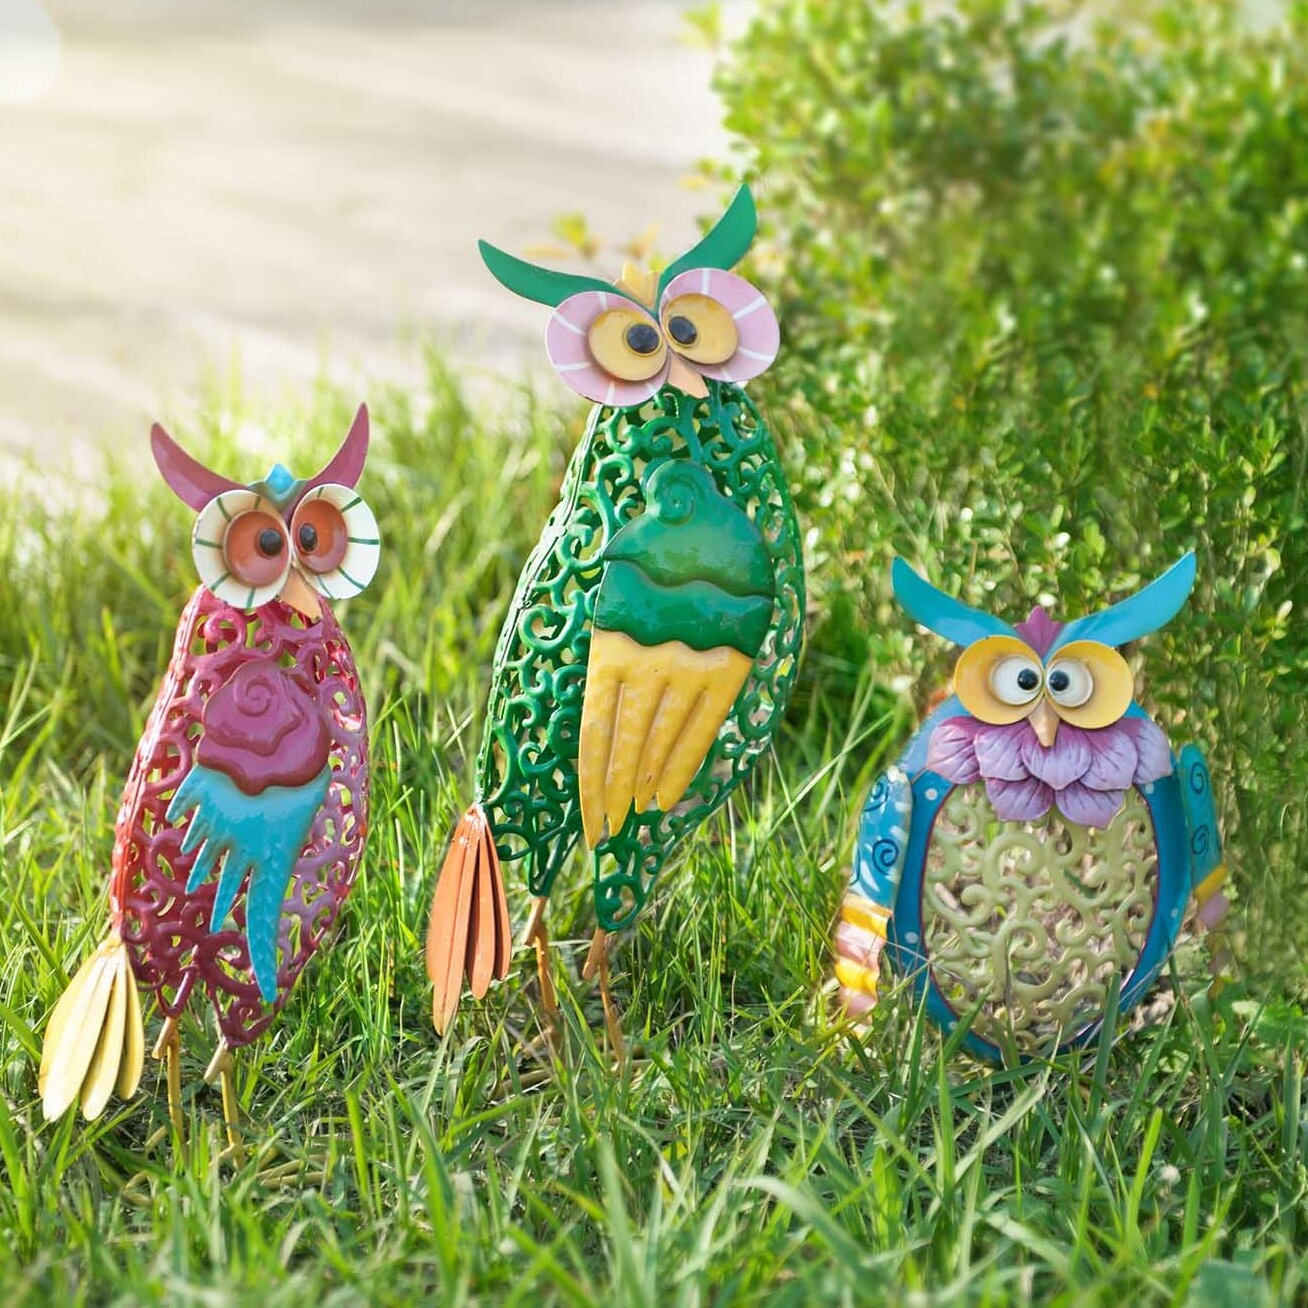 Sunjoy whimsical 3 piece owl garden statue set reviews for Whimsical garden statues